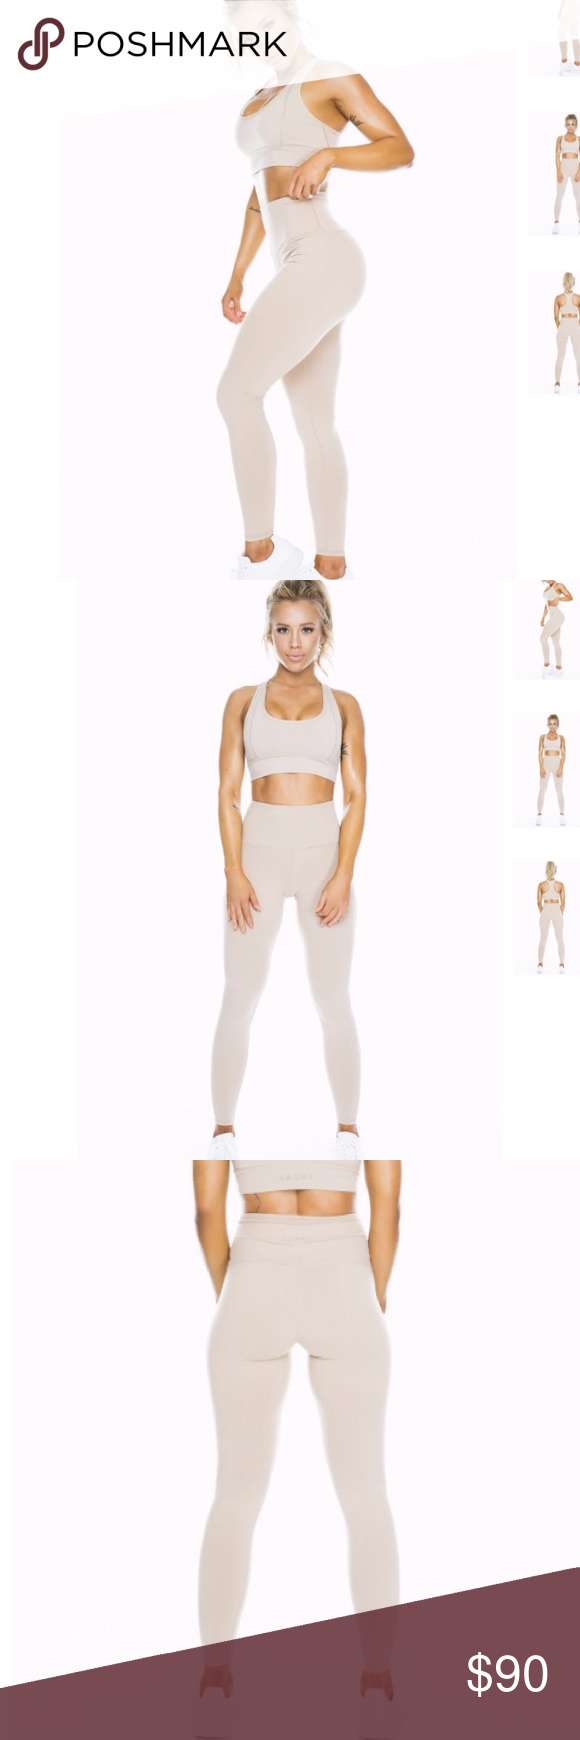 ed8df2277f0f9 Reserved for trade  saski leggings Gymshark shorts. Saski collection nude  high waist leggings ...